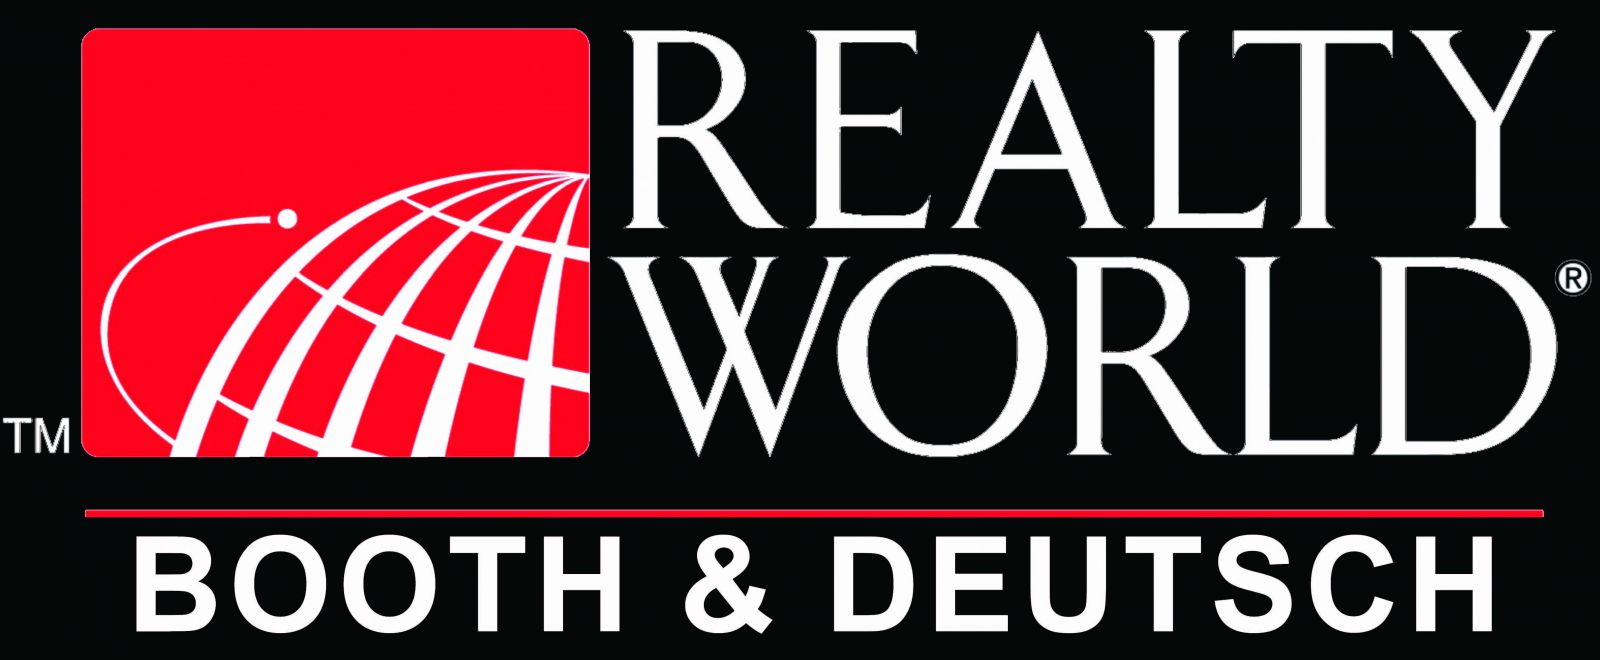 Realty World Booth & Deutsch